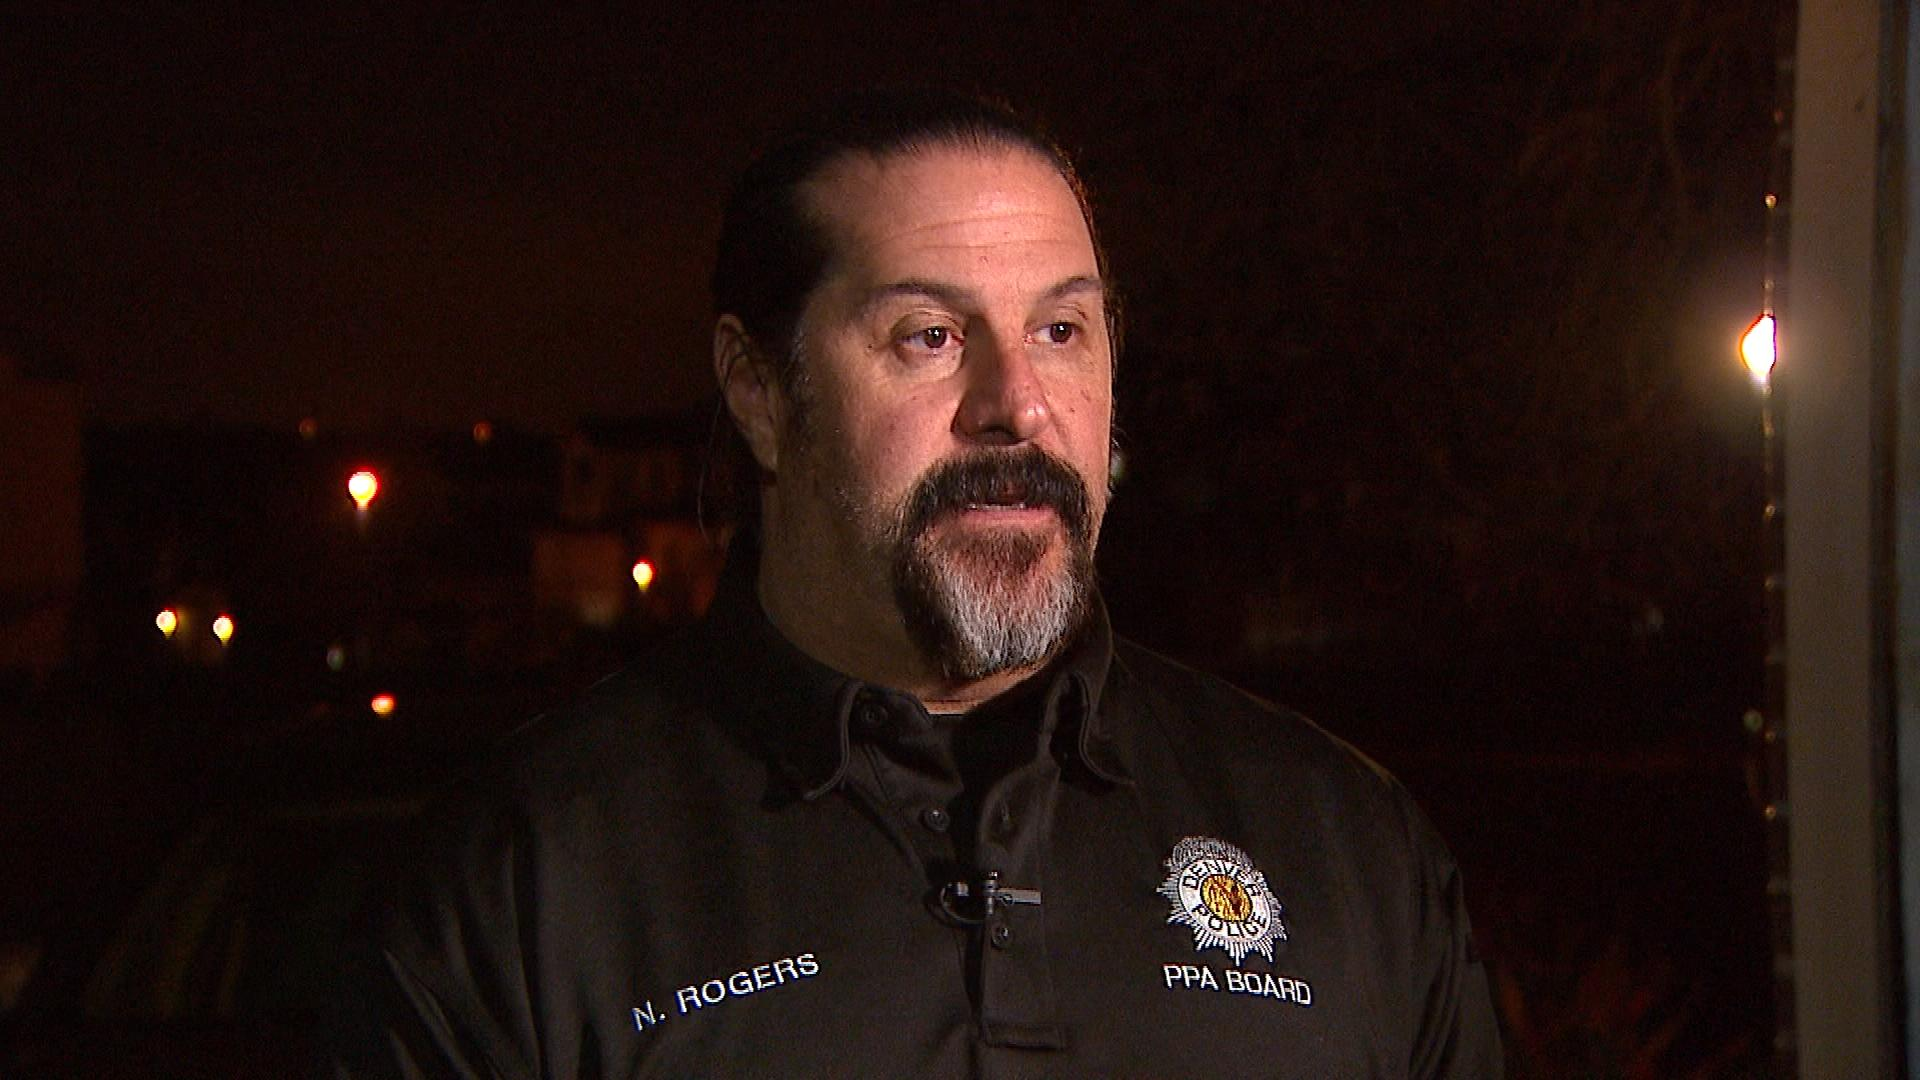 Denver Police Protective Association President Nick Rogers (credit: CBS)